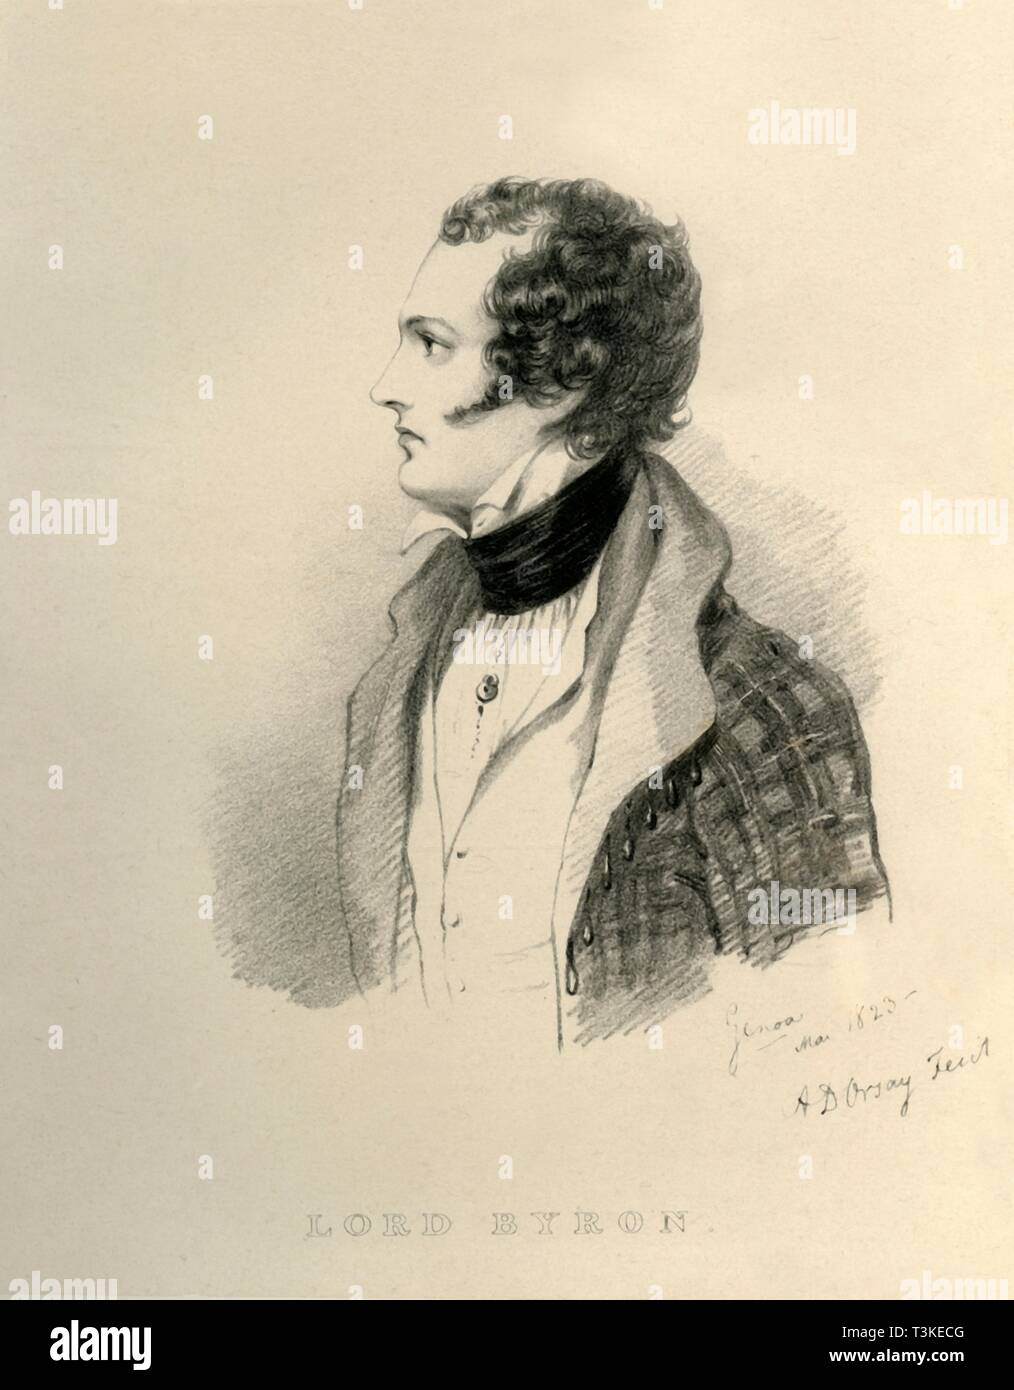 """'Lord Byron', 1823. Portrait of English poet George Noel Gordon Byron, Lord Byron (1788-1824). From """"Portraits by Count D'Orsay"""", an album assembled by Lady Georgiana Codrington. [1850s] Stock Photo"""